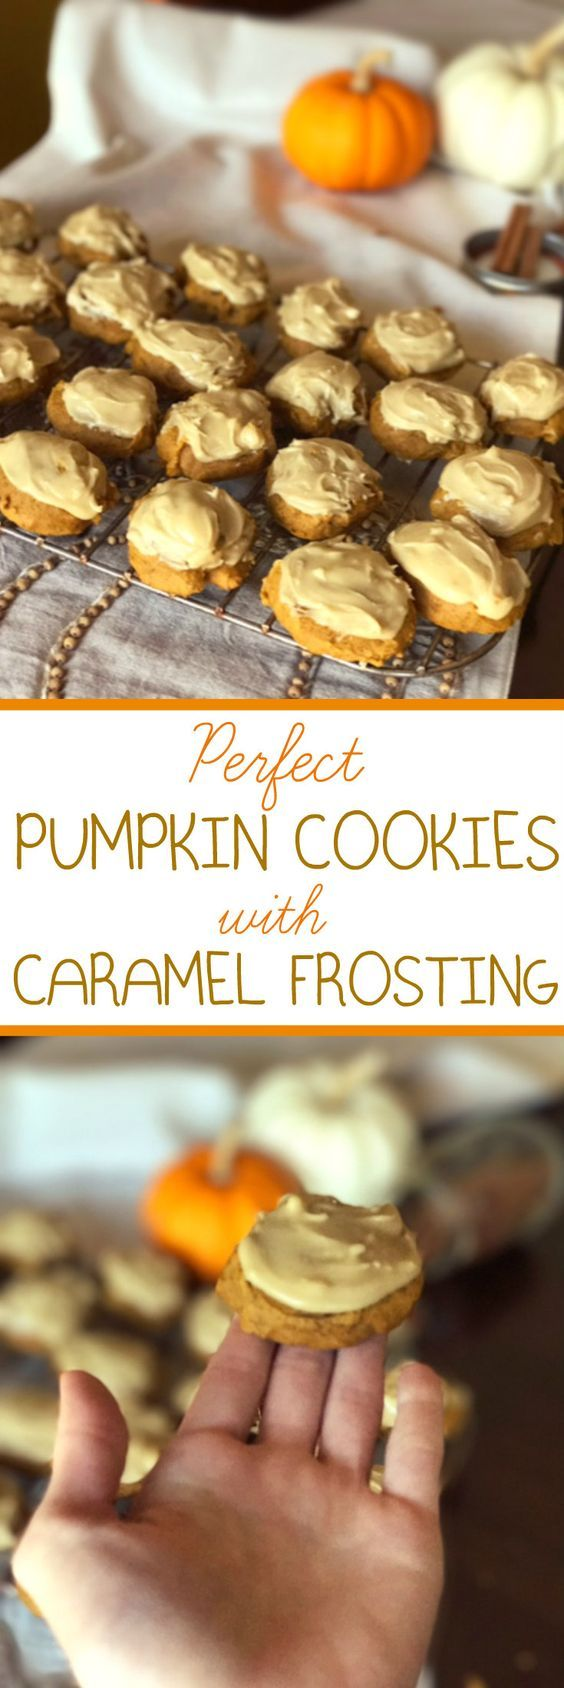 Best recipe for pumpkin cookies with caramel frosting! Easy, fun fall recipe. Soft, chewy cookies with sweet frosting.